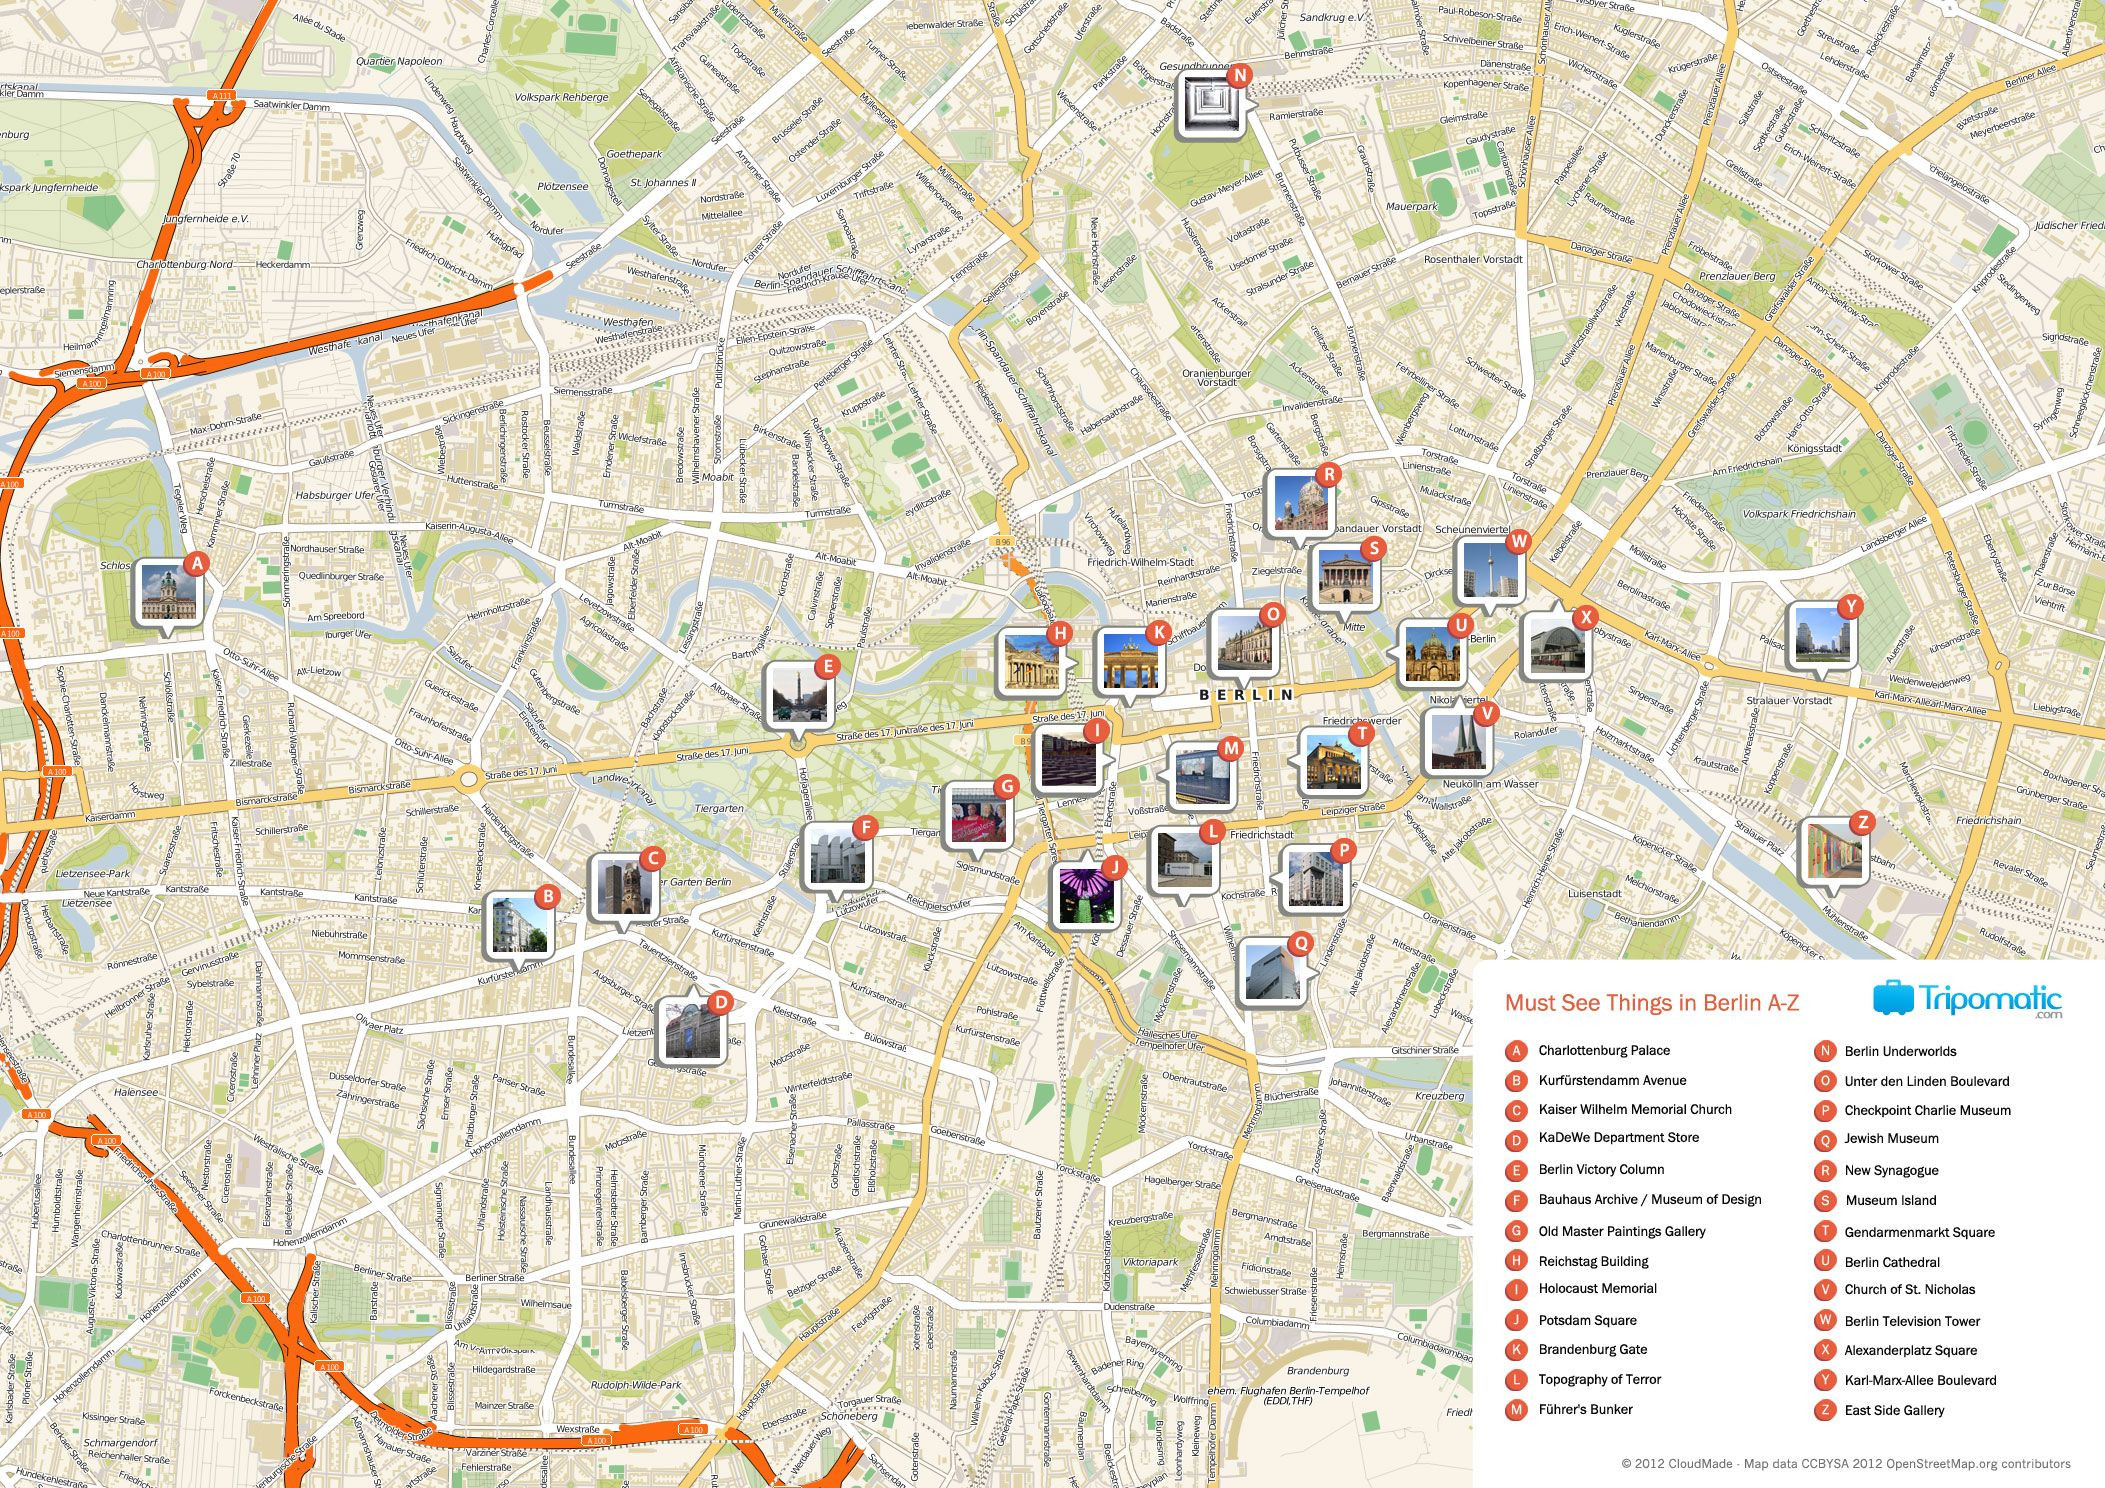 Printable Map Valencia Awesome Map Of Berlin Tourist Sights And Attractions From Tripomatic